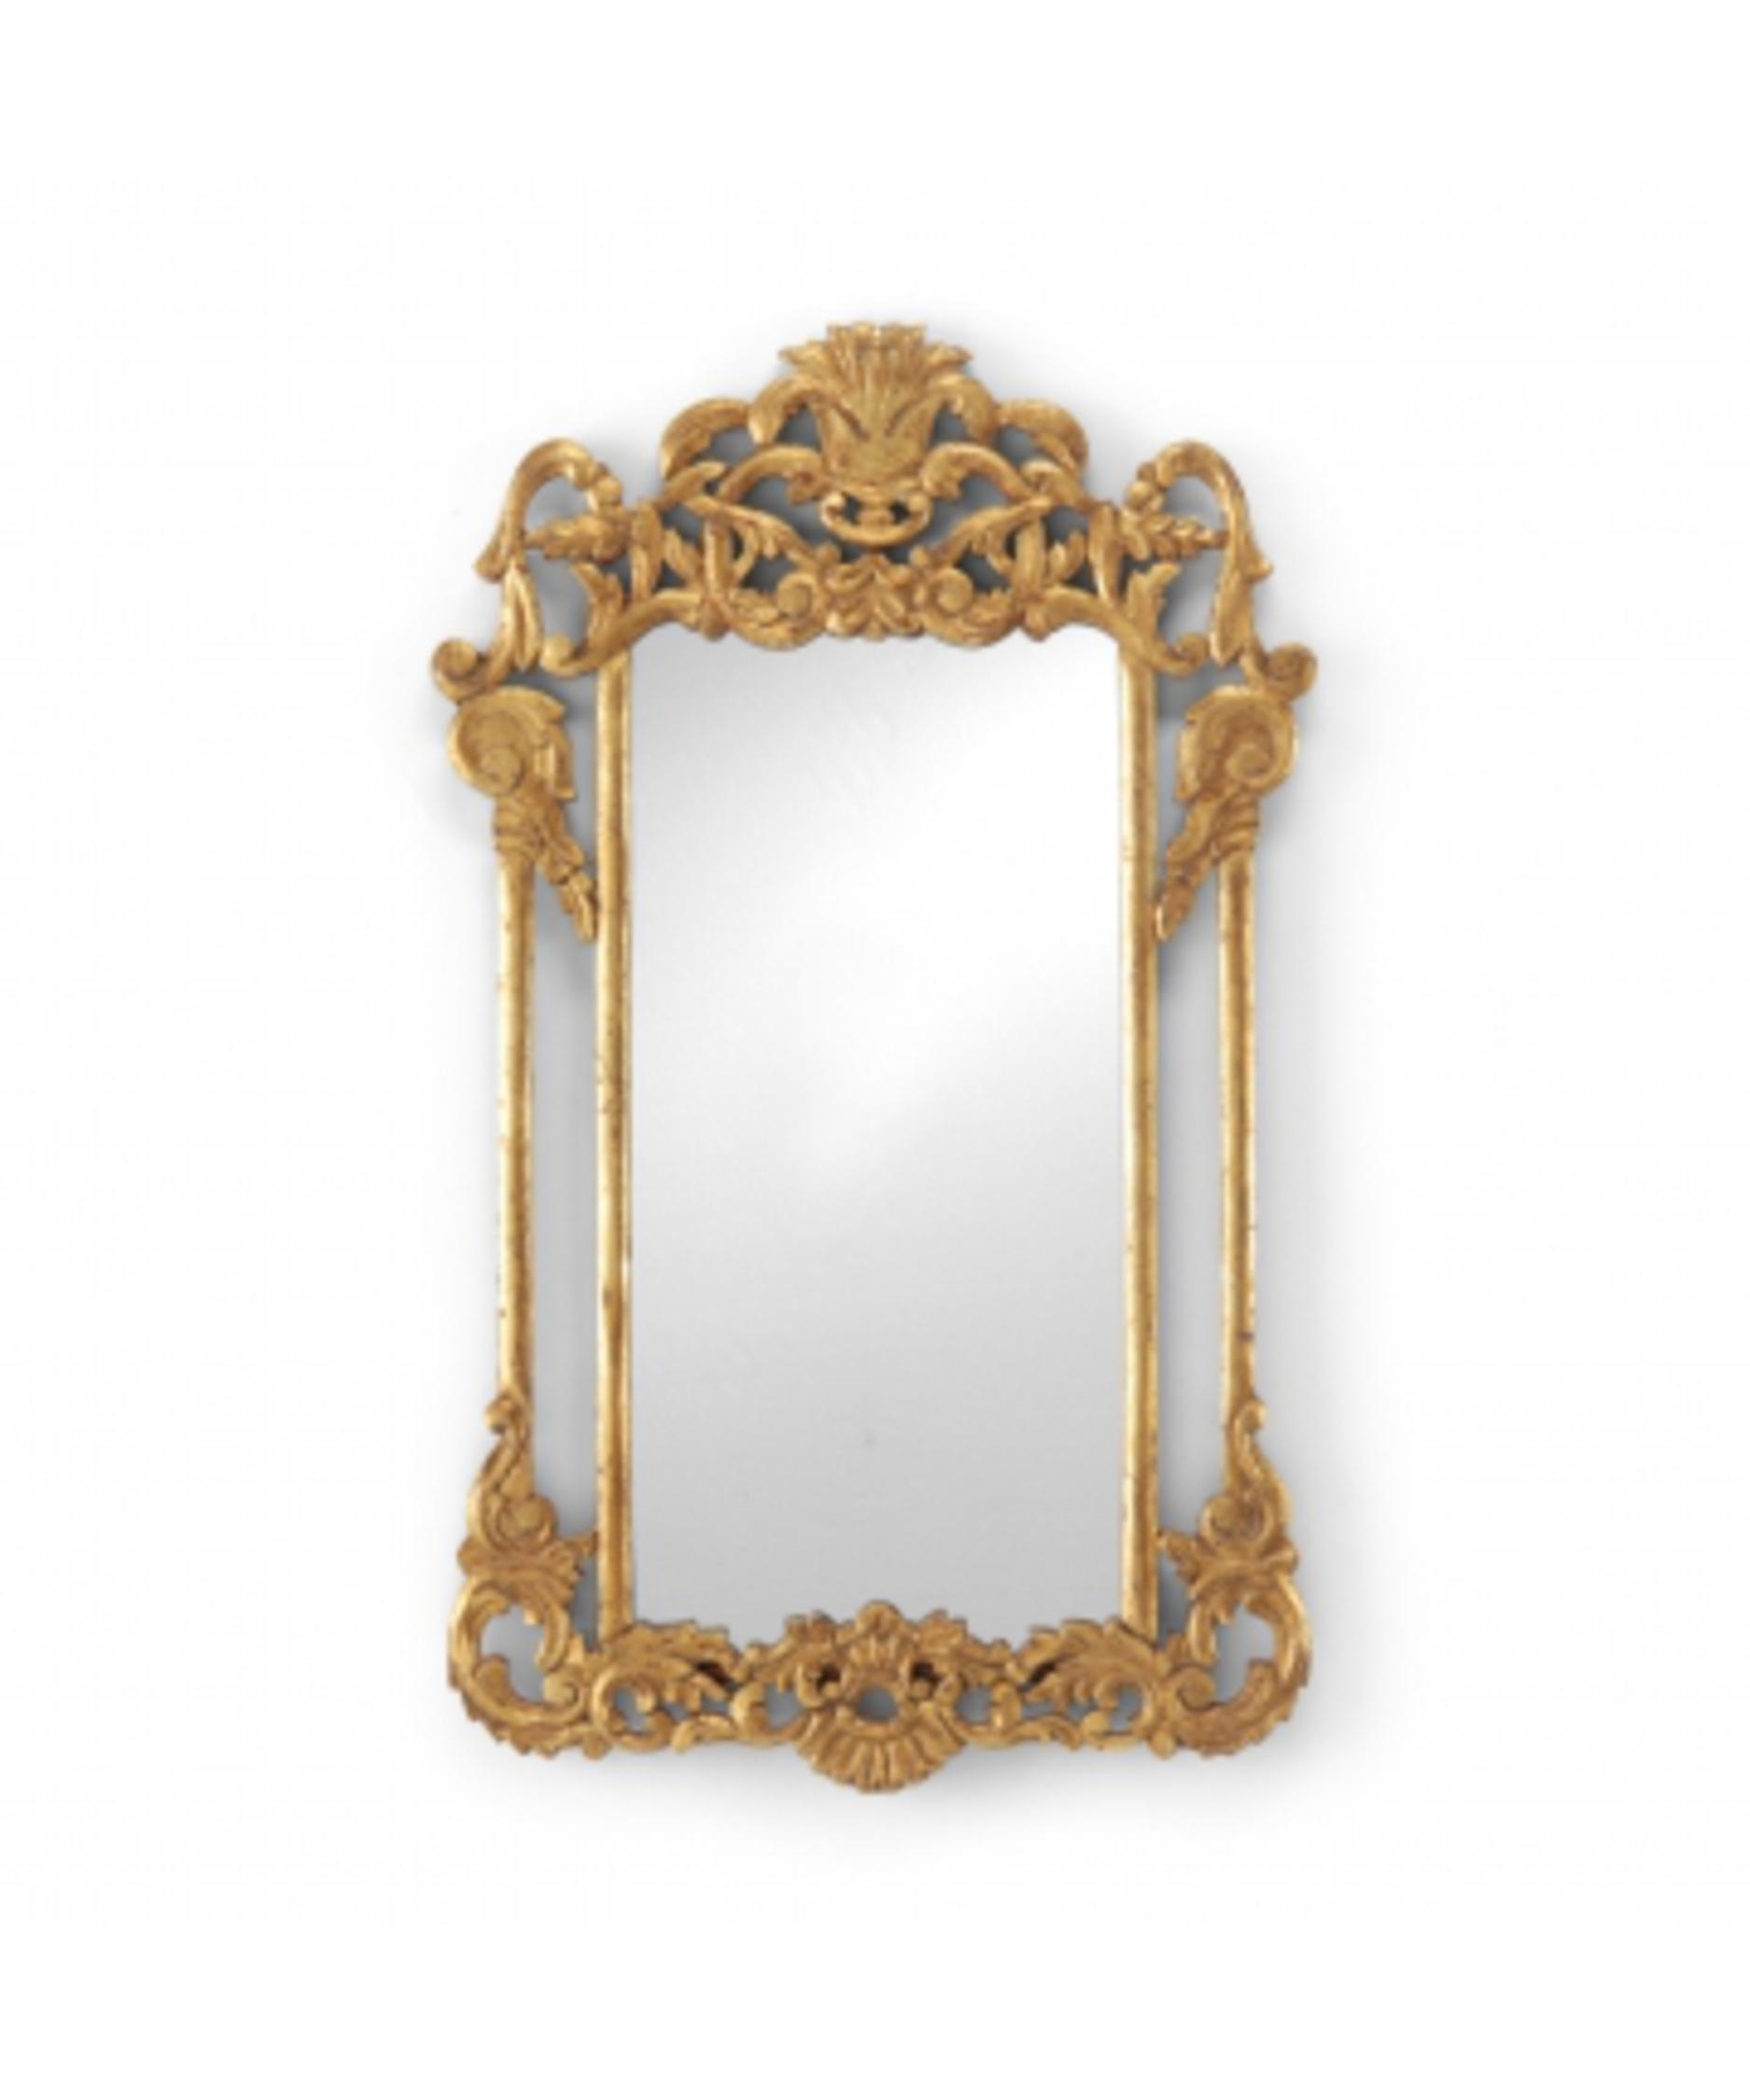 Chelsea House 381484 Ornate Framed Wall Mirror Capitol Lighting For Ornate Wall Mirror (Image 2 of 15)